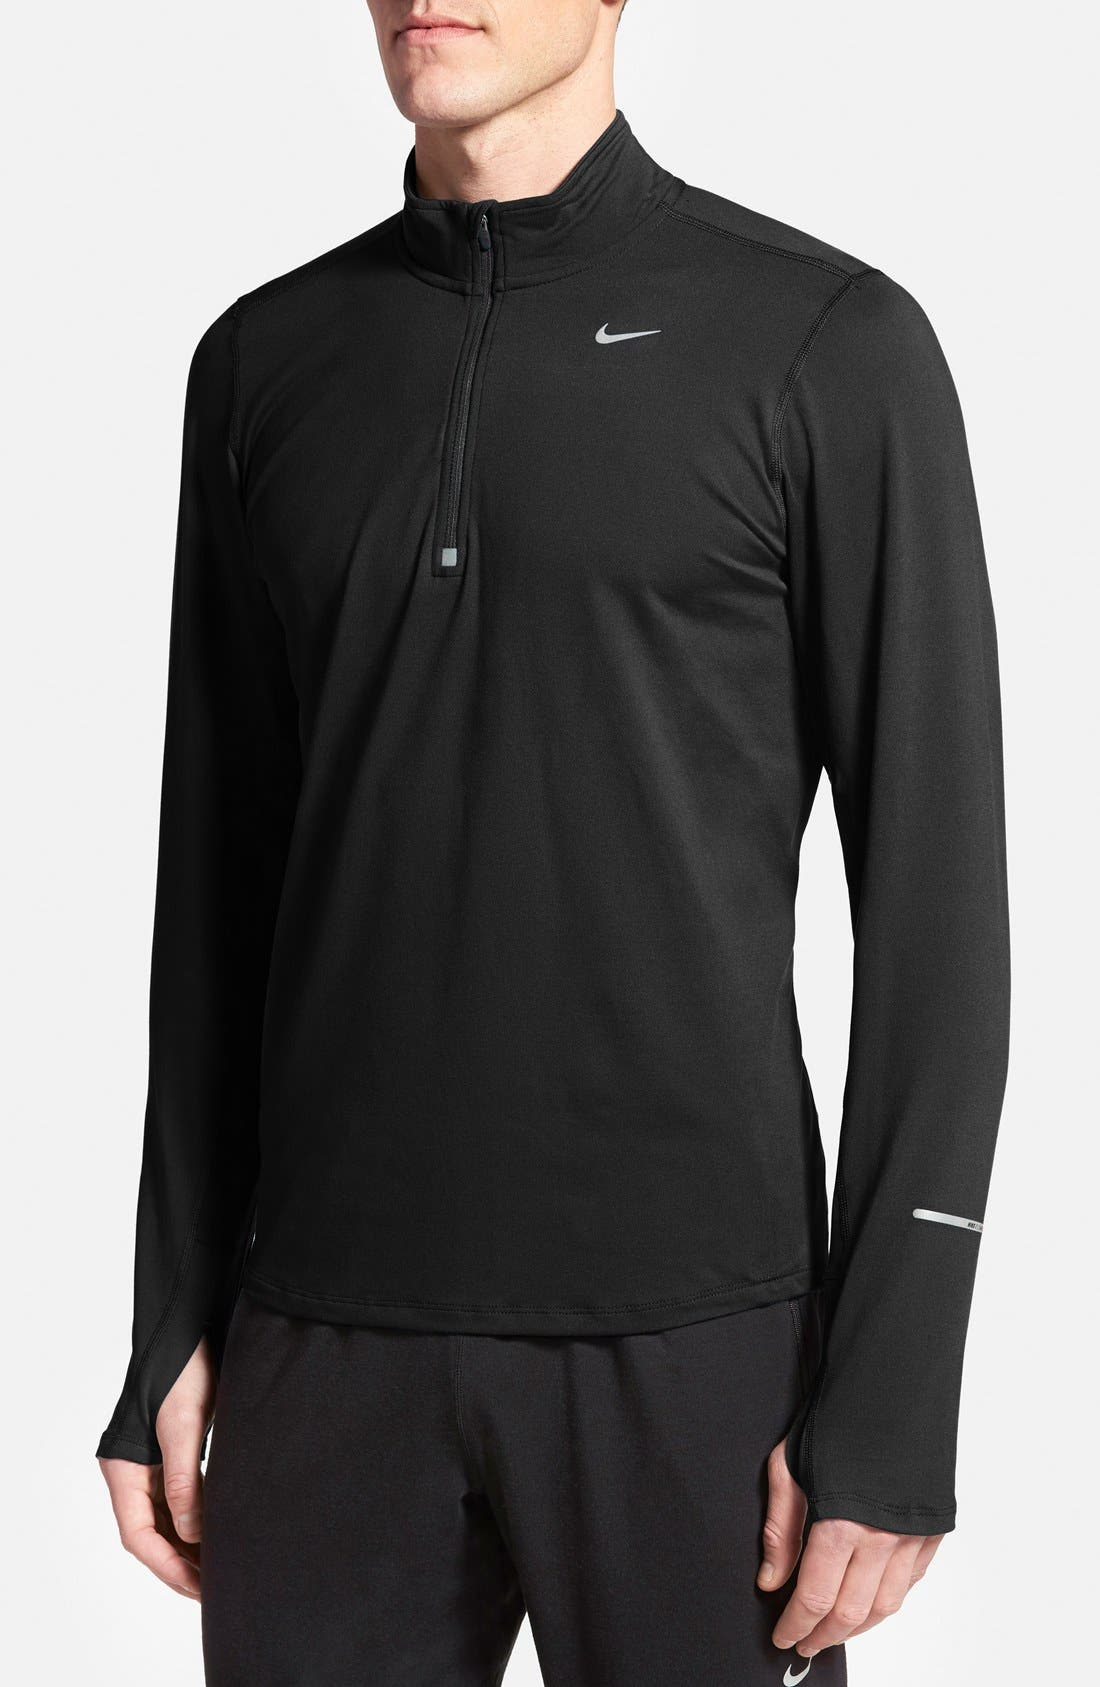 Main Image - Nike 'Element' Dri-FIT Half Zip Running Top